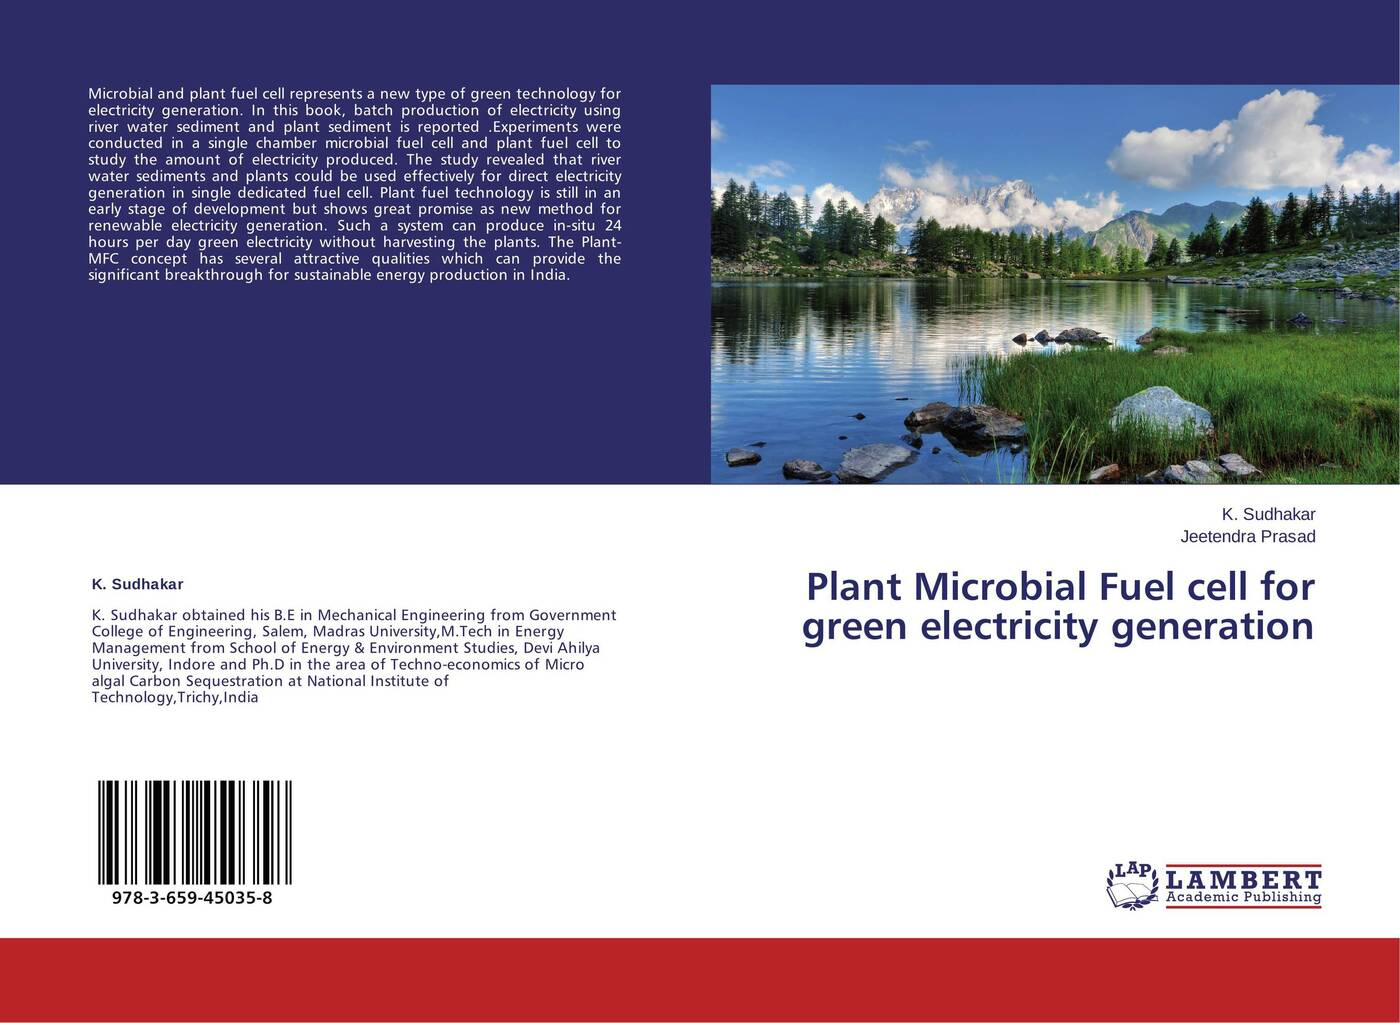 K. Sudhakar and Jeetendra Prasad Plant Microbial Fuel cell for green electricity generation